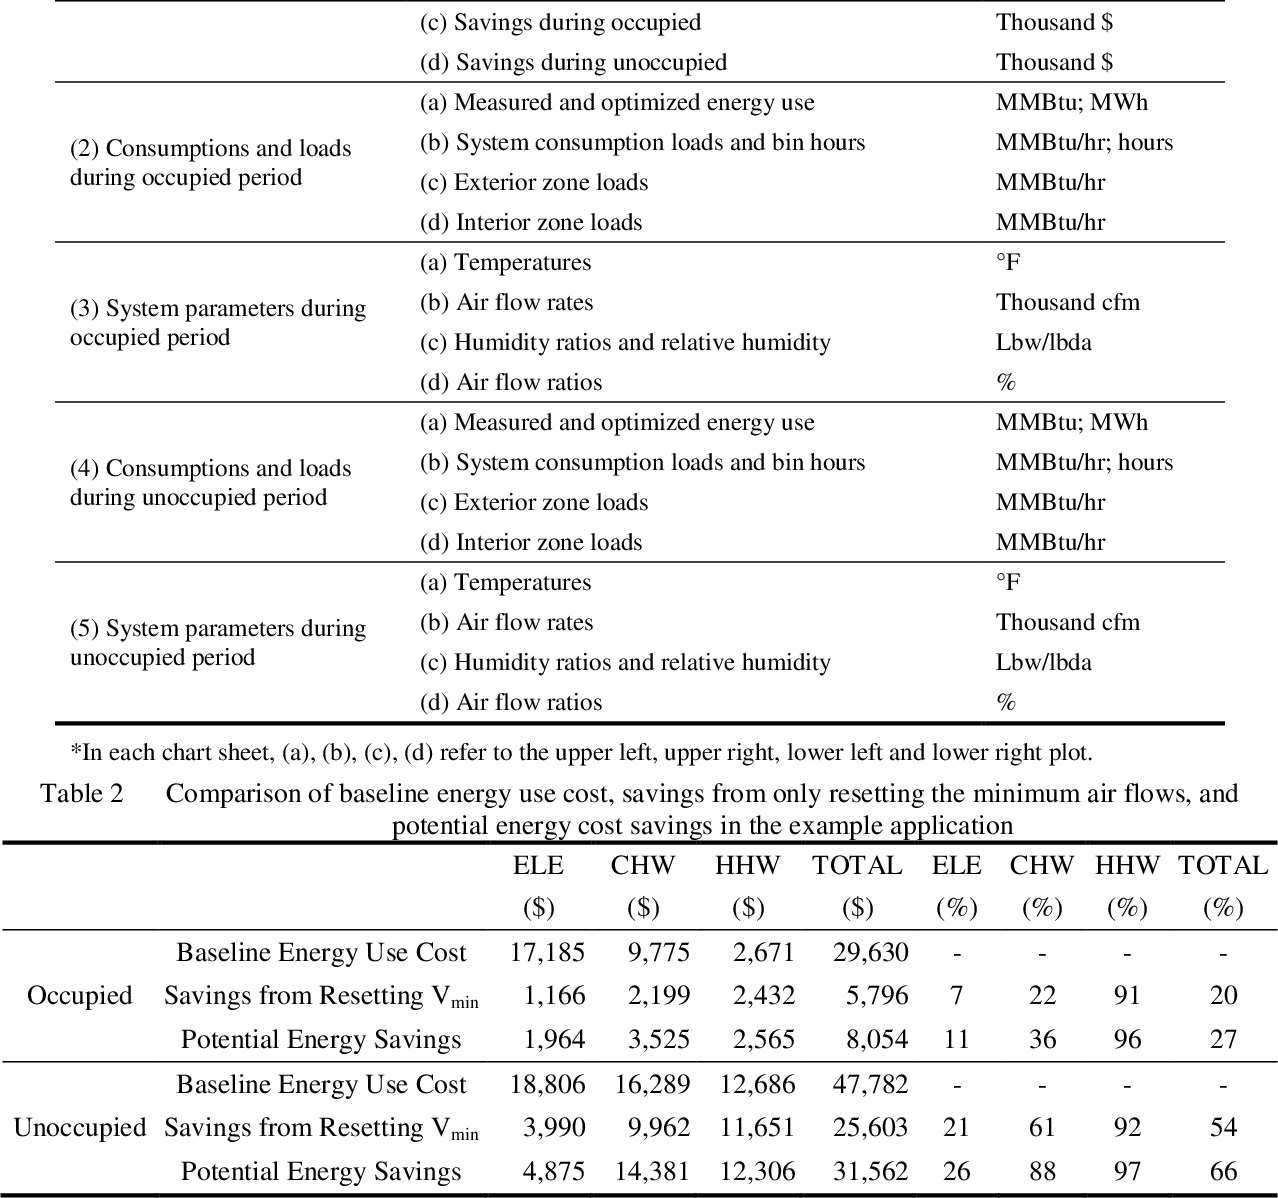 Table 2 from Development of the Potential Energy Savings